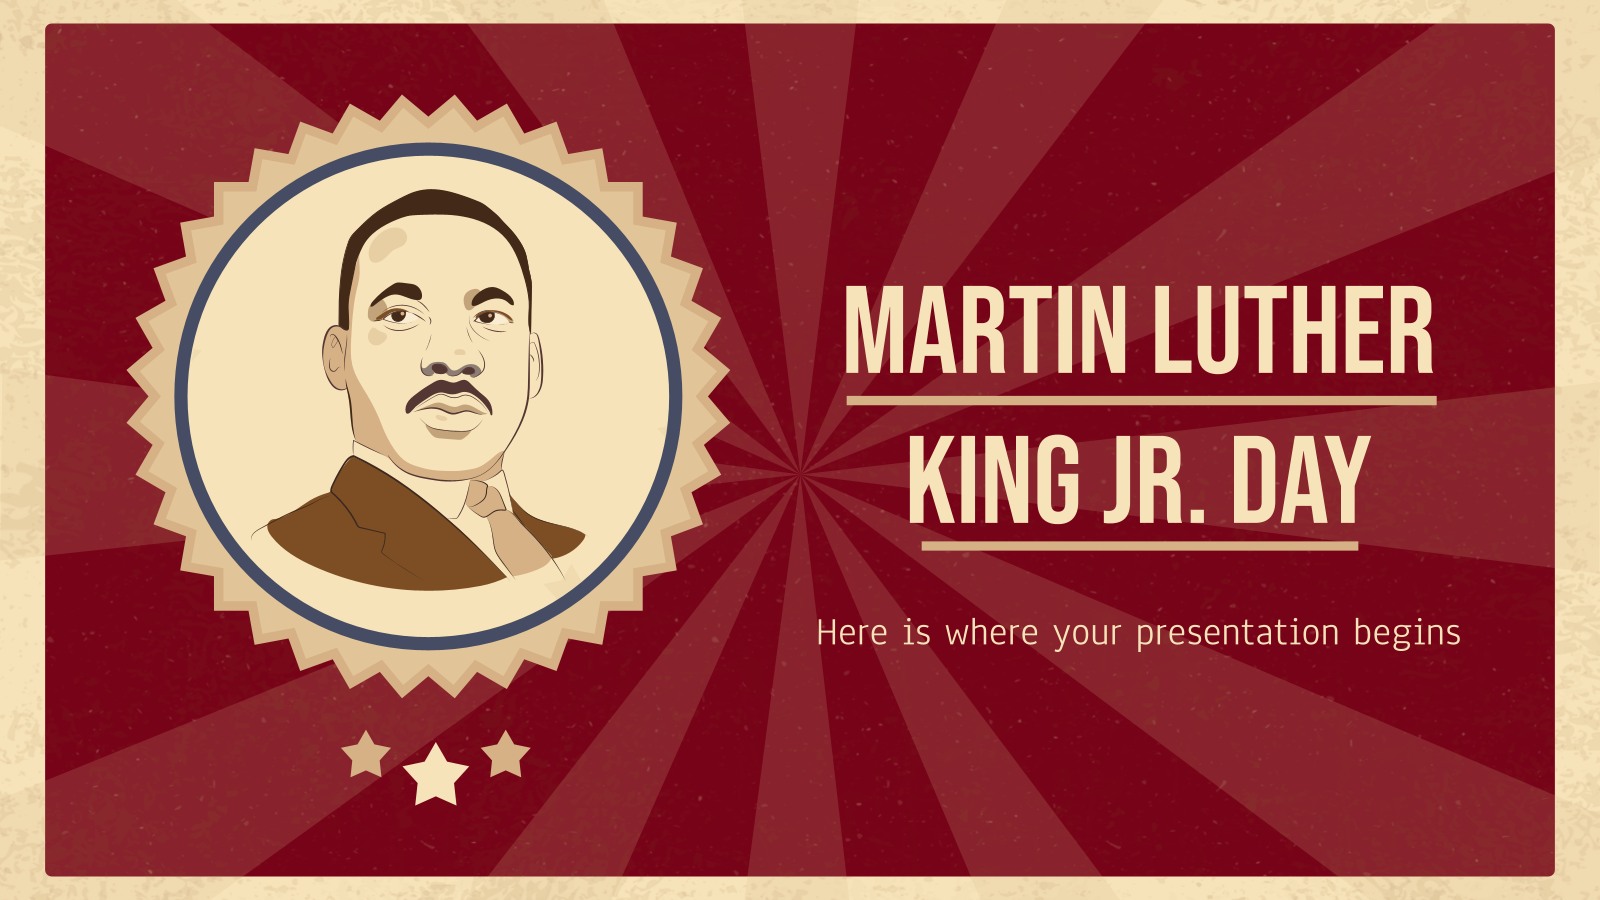 Martin Luther King Jr. Day presentation template